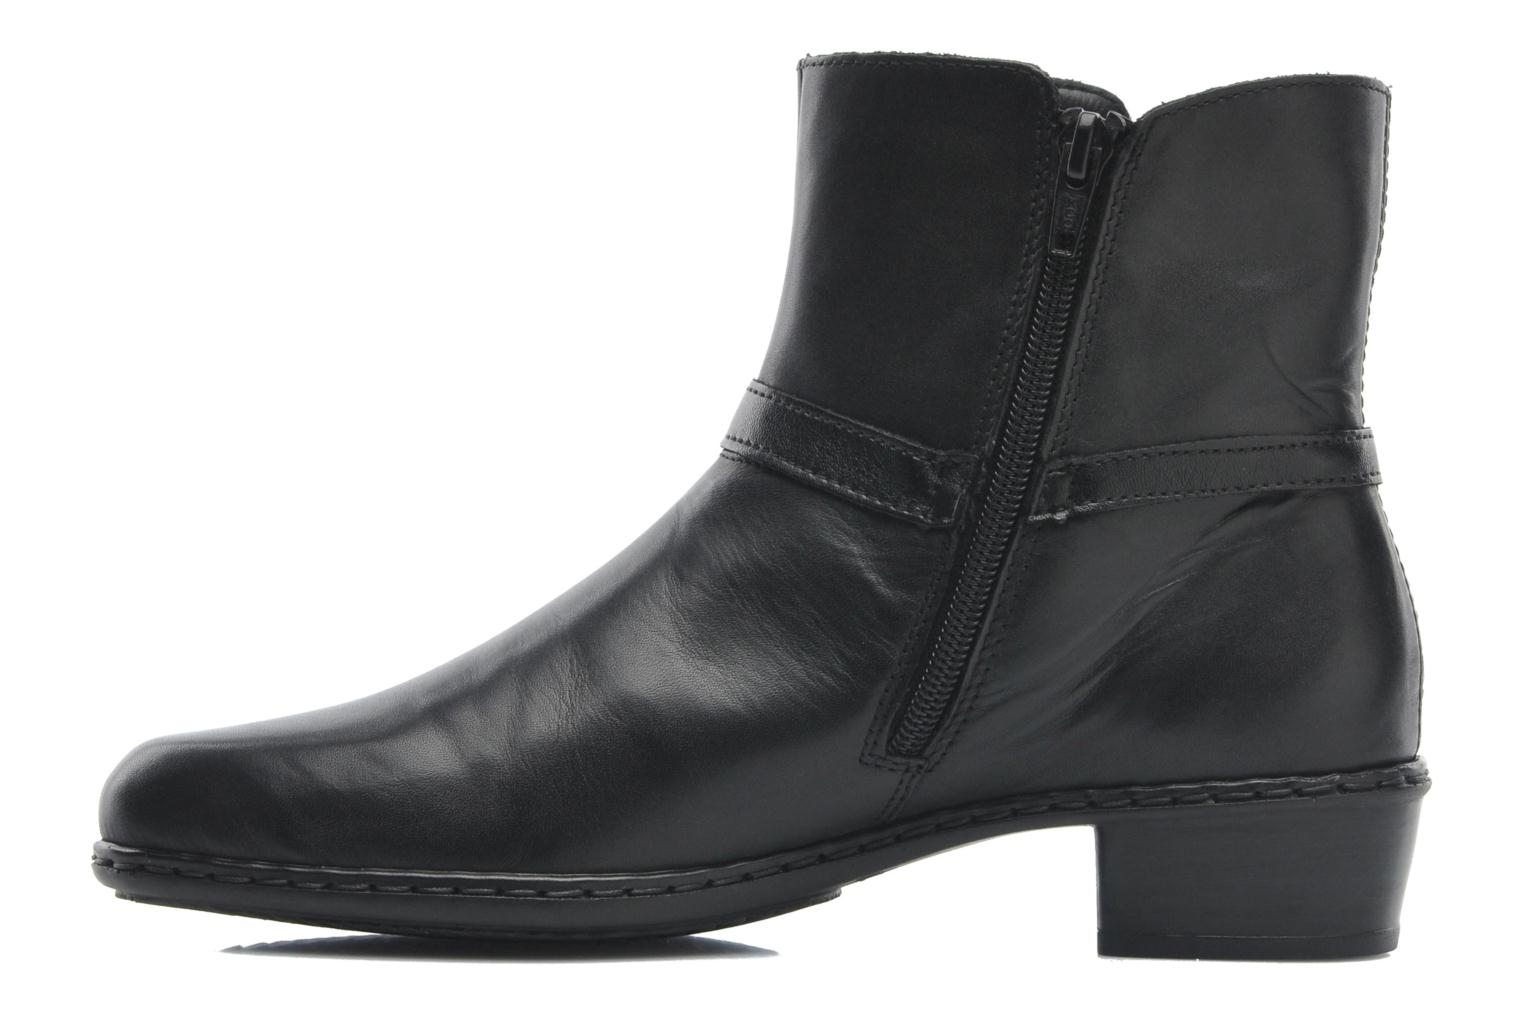 Bottines et boots Rieker Jane Y0762 Noir vue face